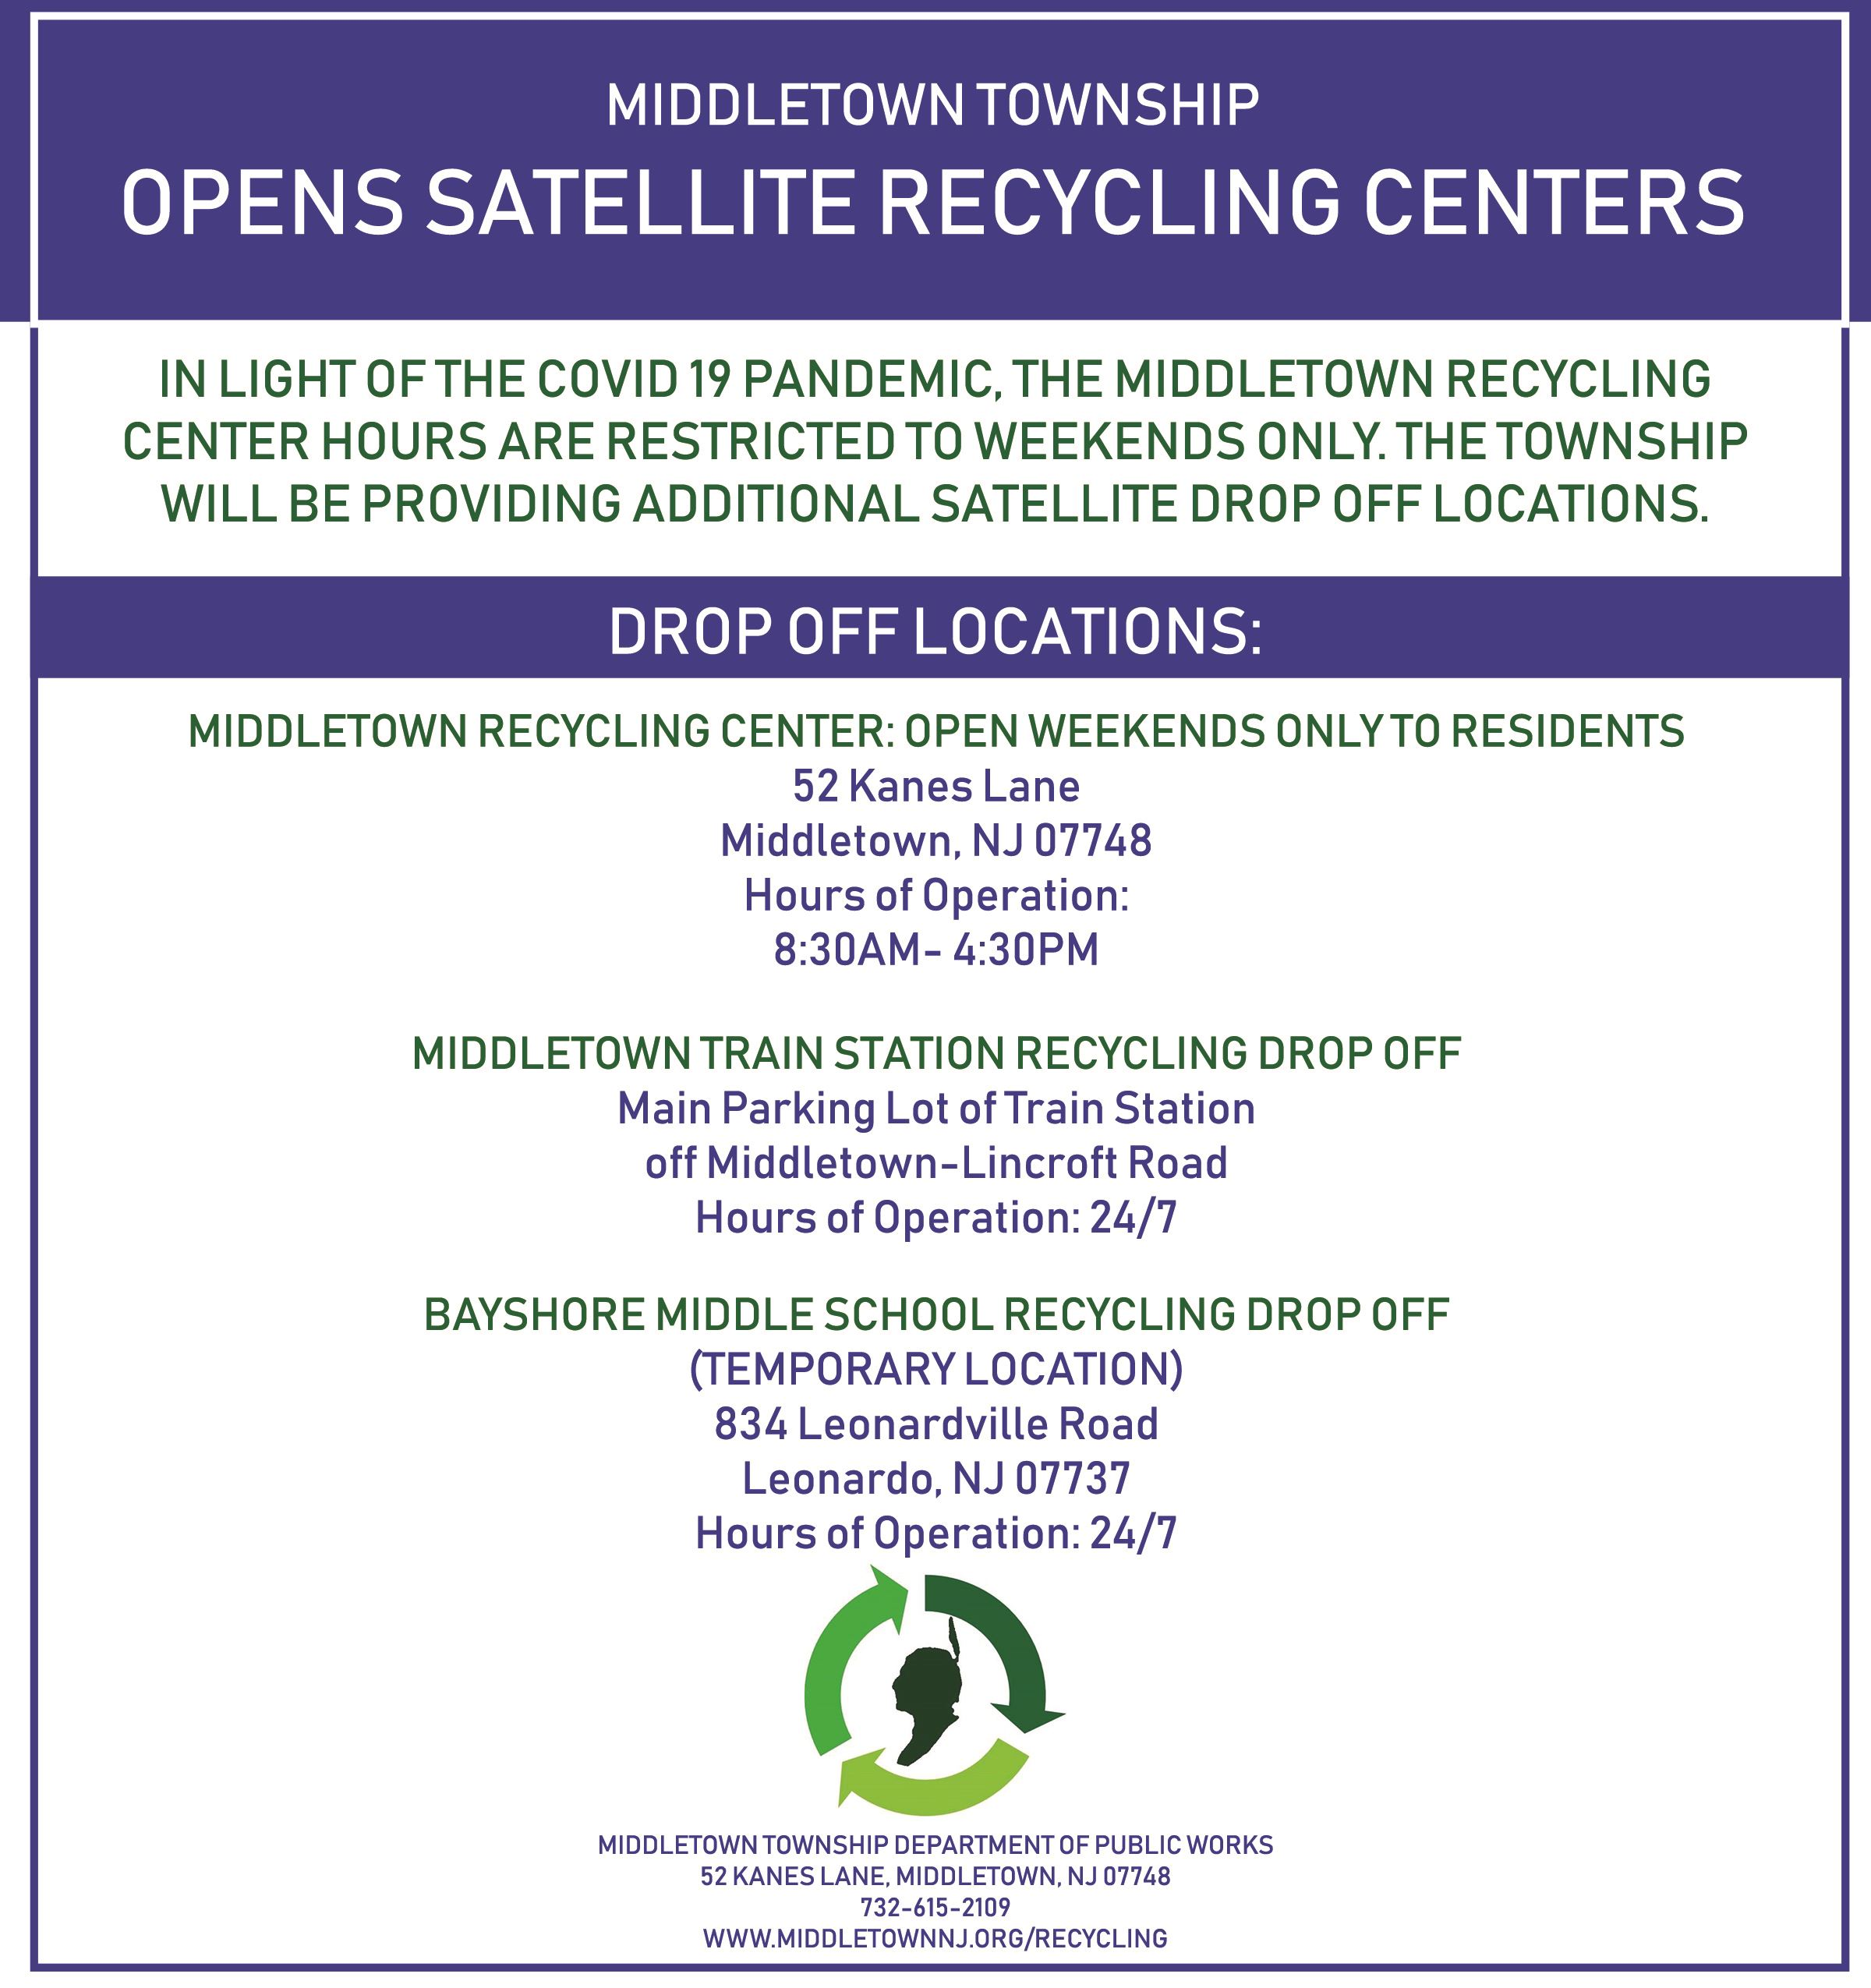 Bayshore Recycling Center Drop Off